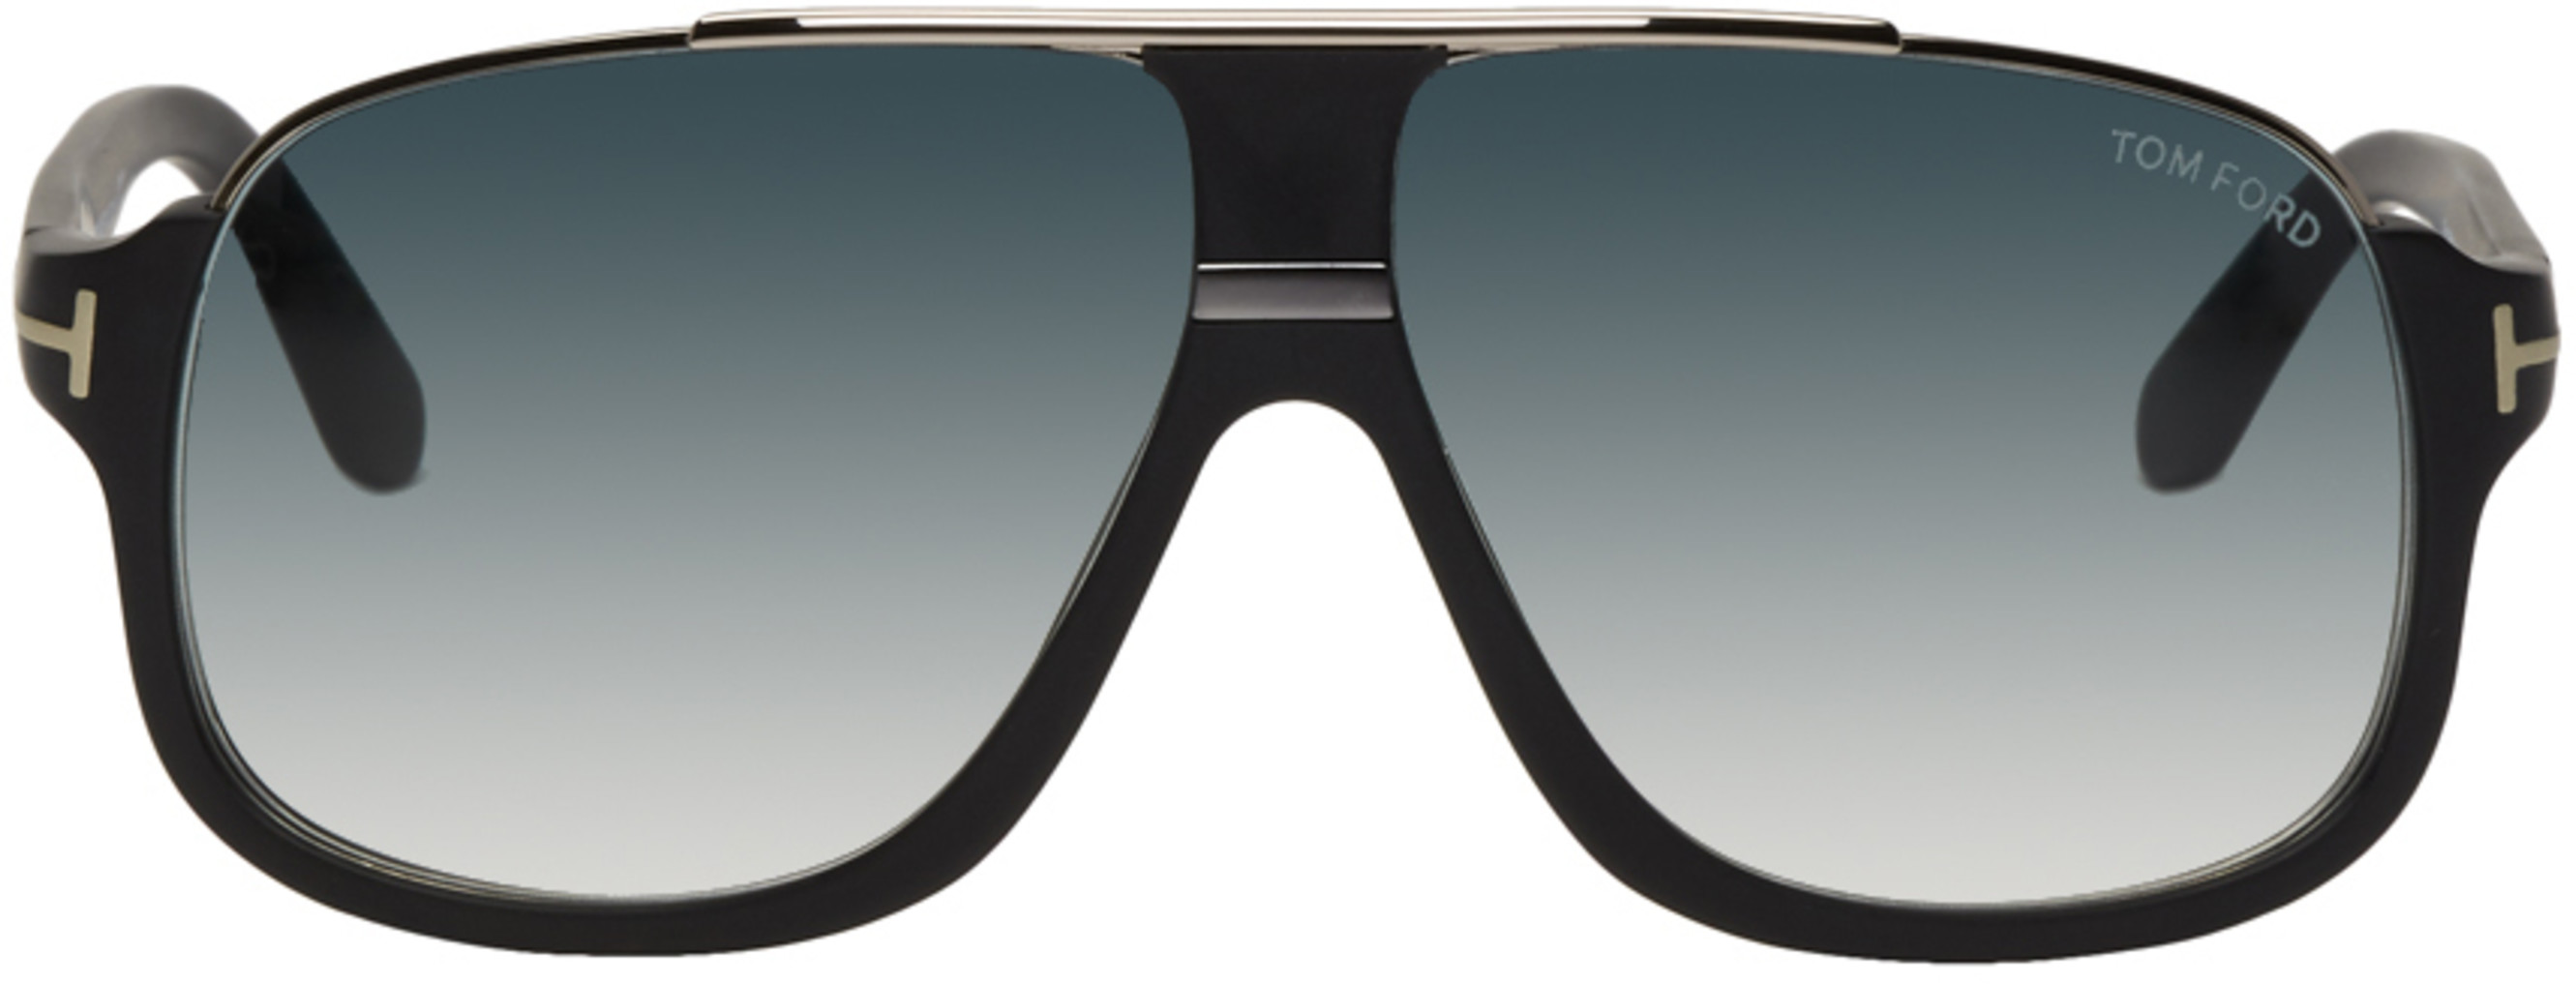 95c5585889 Tom Ford for Men SS19 Collection